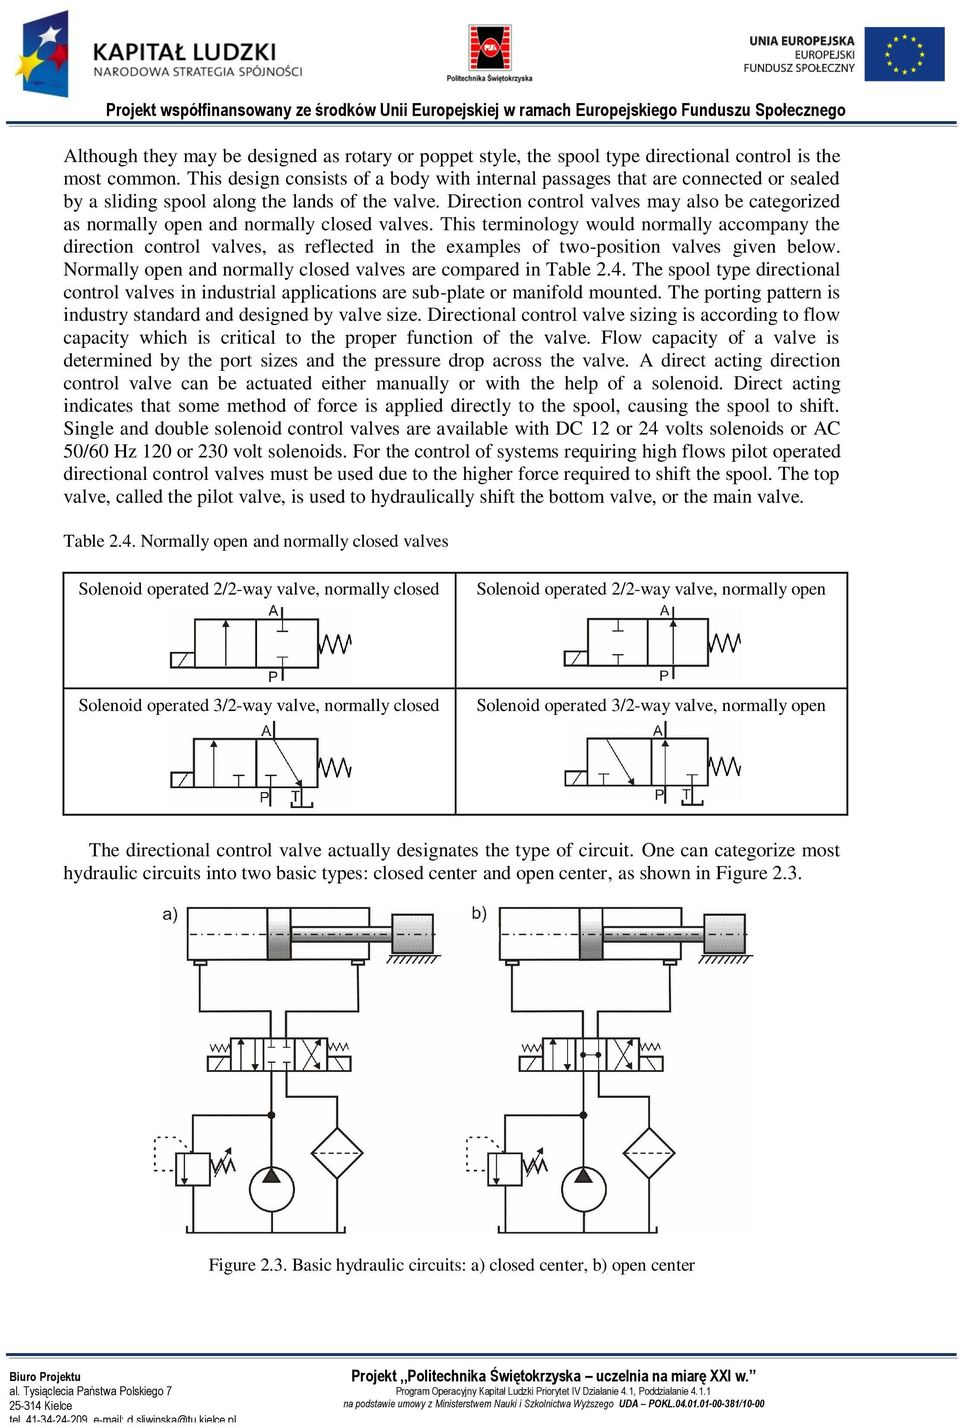 Academic Textbook Fluid Power Control Systems The Lecture 15 Hours This Application Diagram Indicates How Loadsensing Valves Direction May Also Be Categorized As Normally Open And Closed